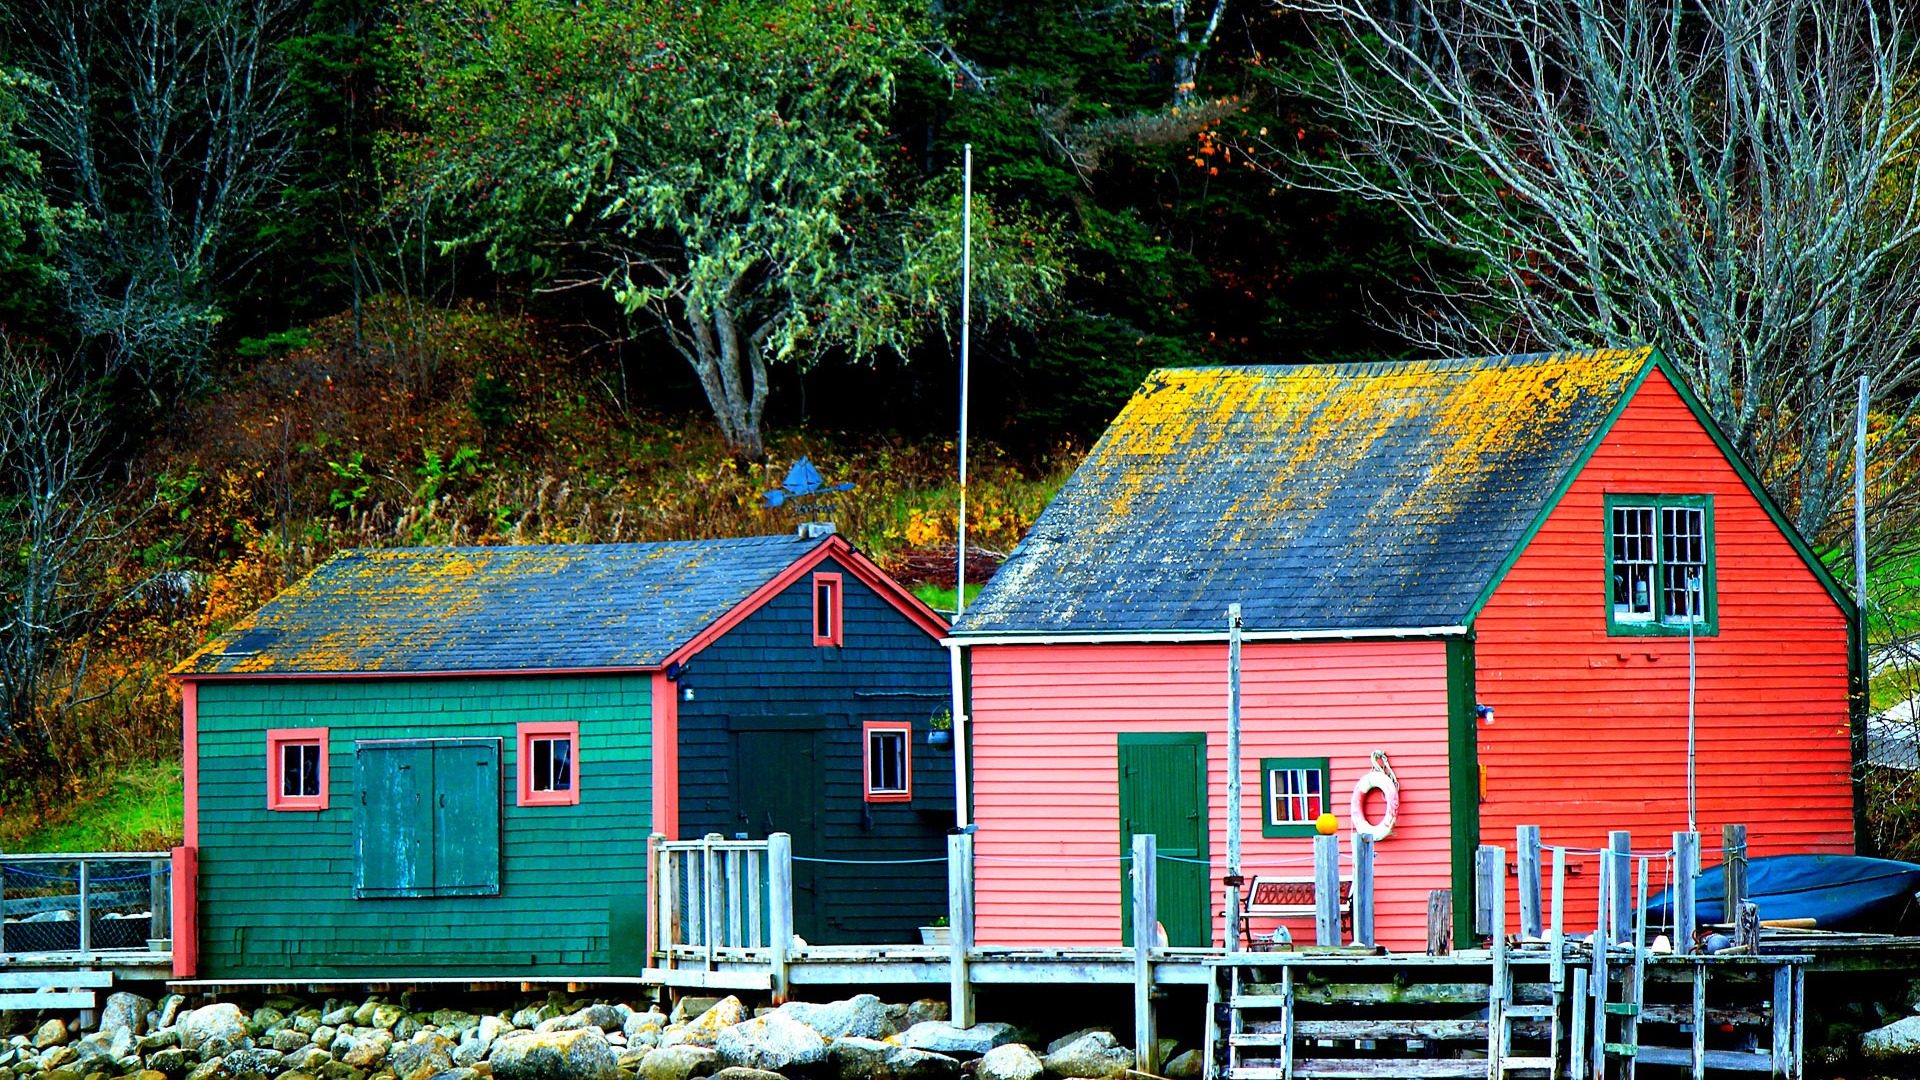 Small fishing village autumn-Country Nature Scenery Wallpaper - 1920x1080 wallpaper download